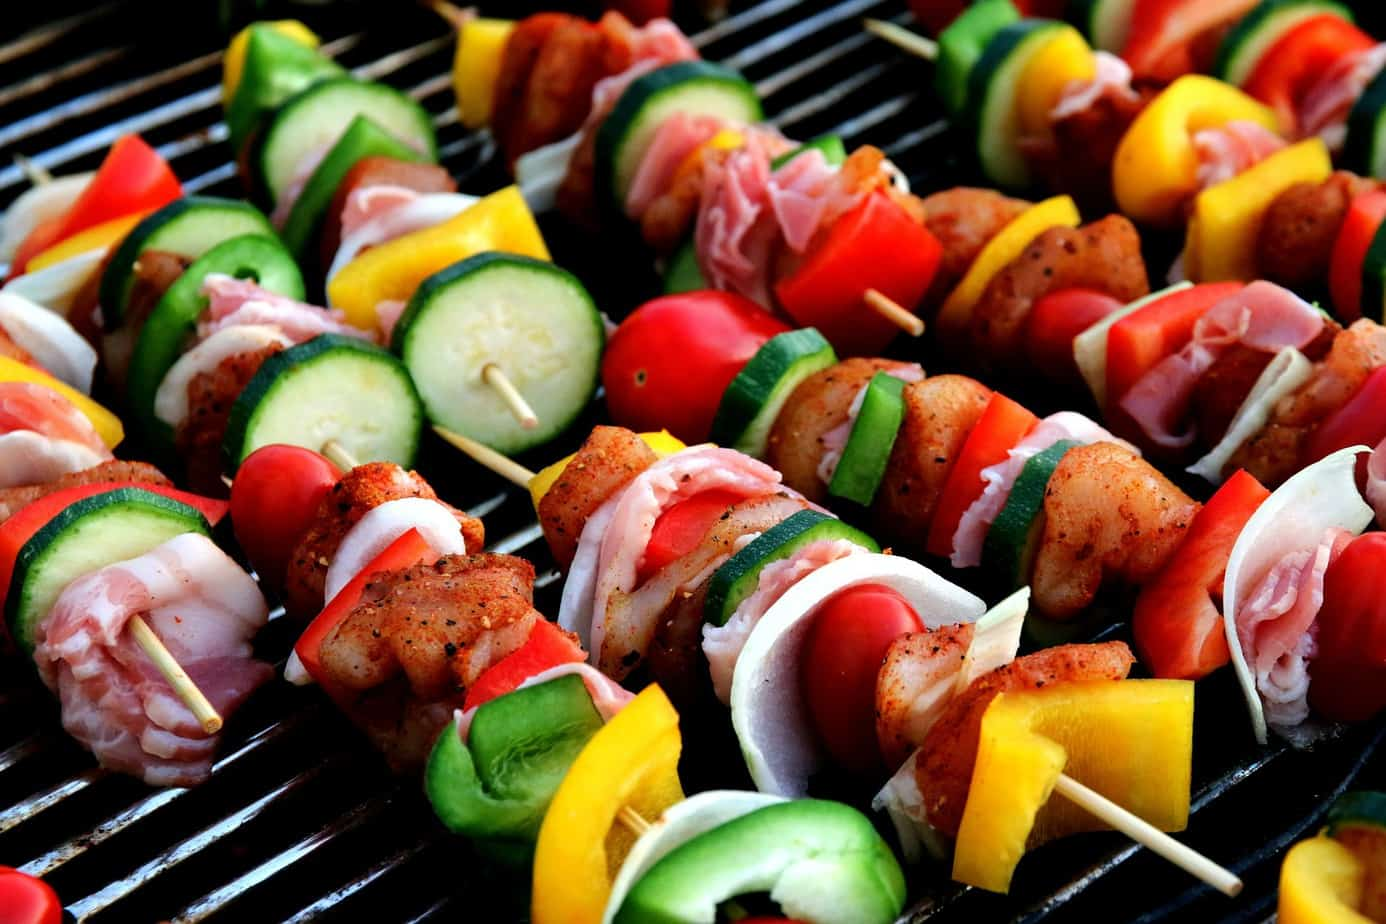 picture of grilled vegetables on skewer